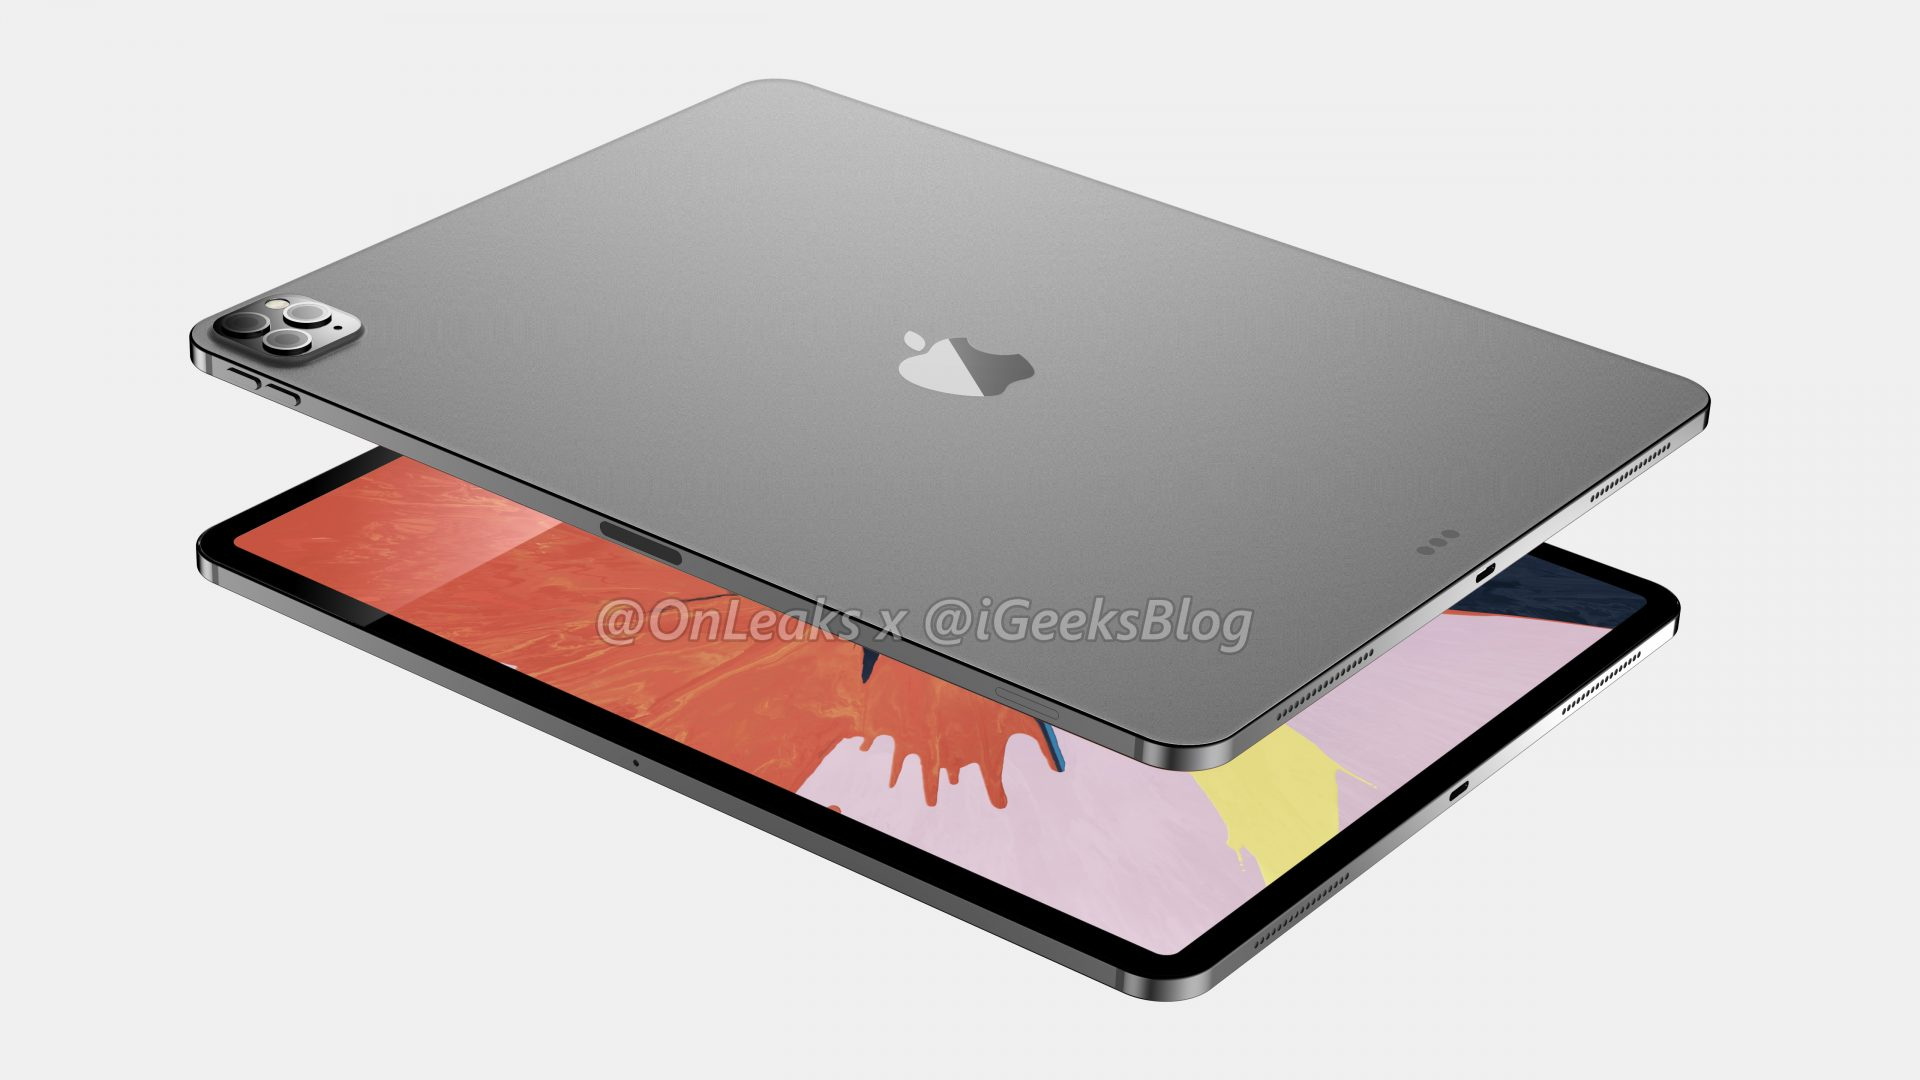 Renders and video of the 2020 iPad Pro leak online 11